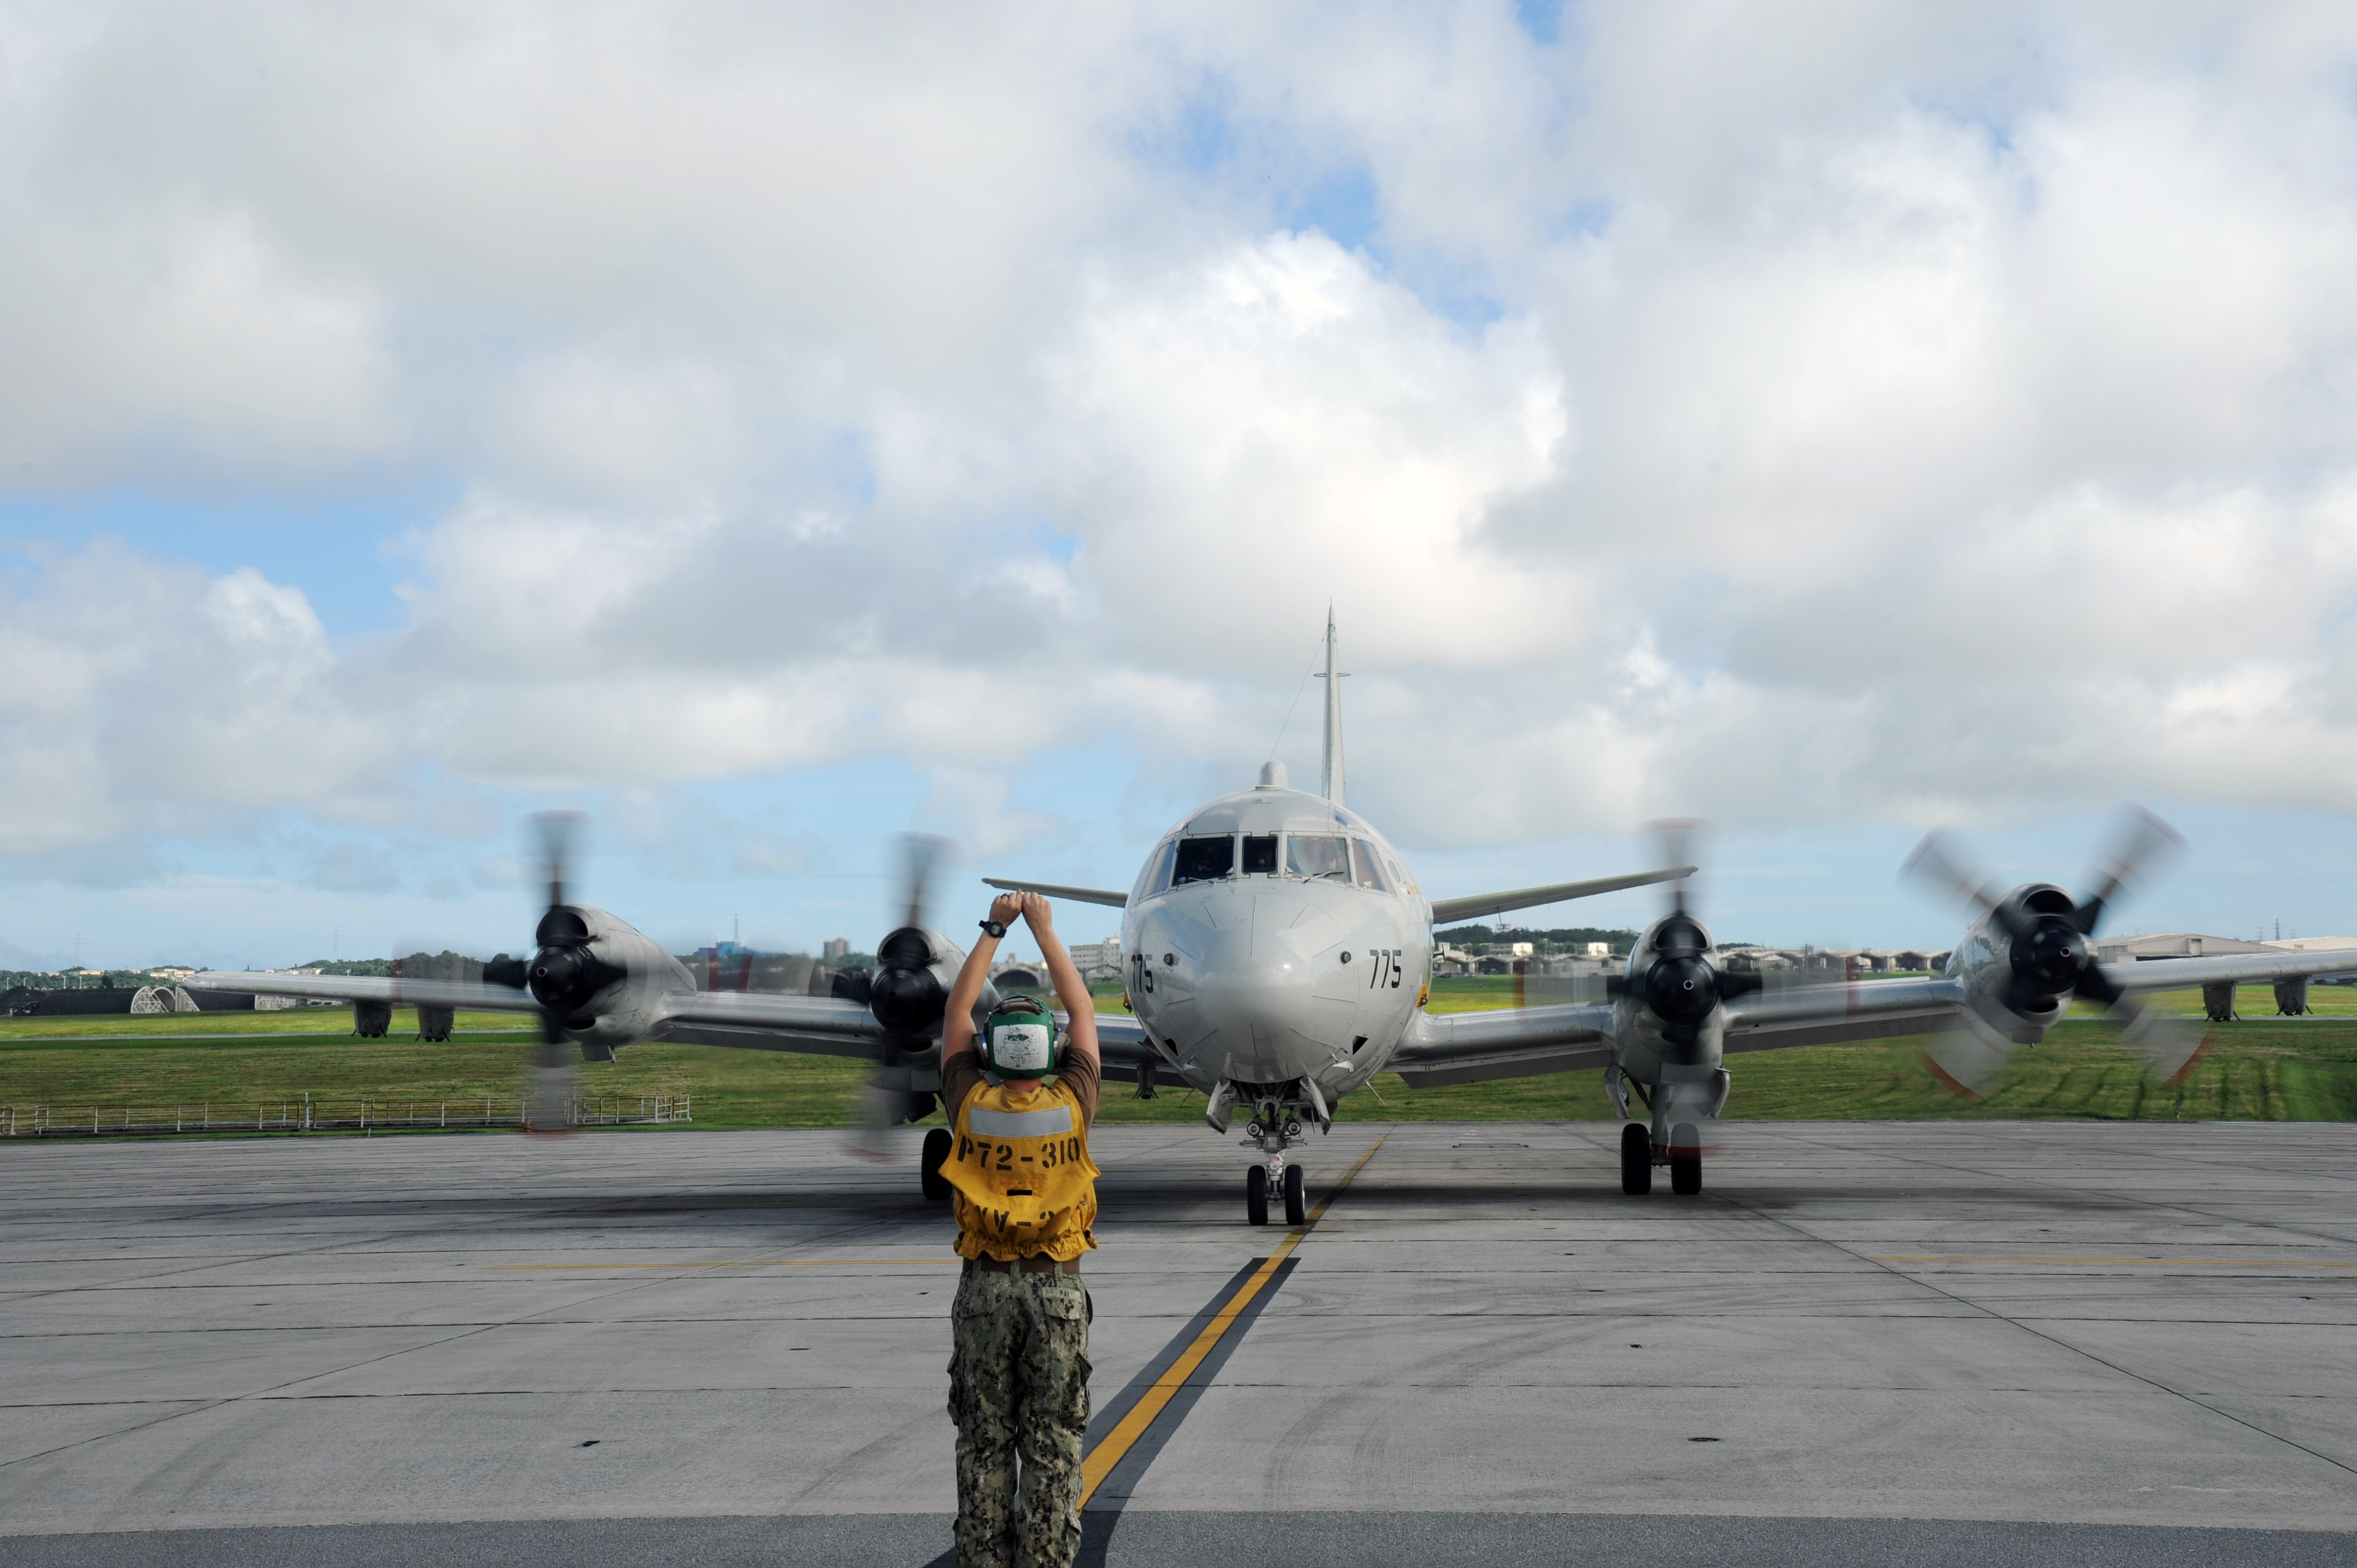 A P3 Orion With Patrol Squadron 47 Has Joined The Lifesaving Effort Us  Destroyer Sampson, Adopt Nz Child